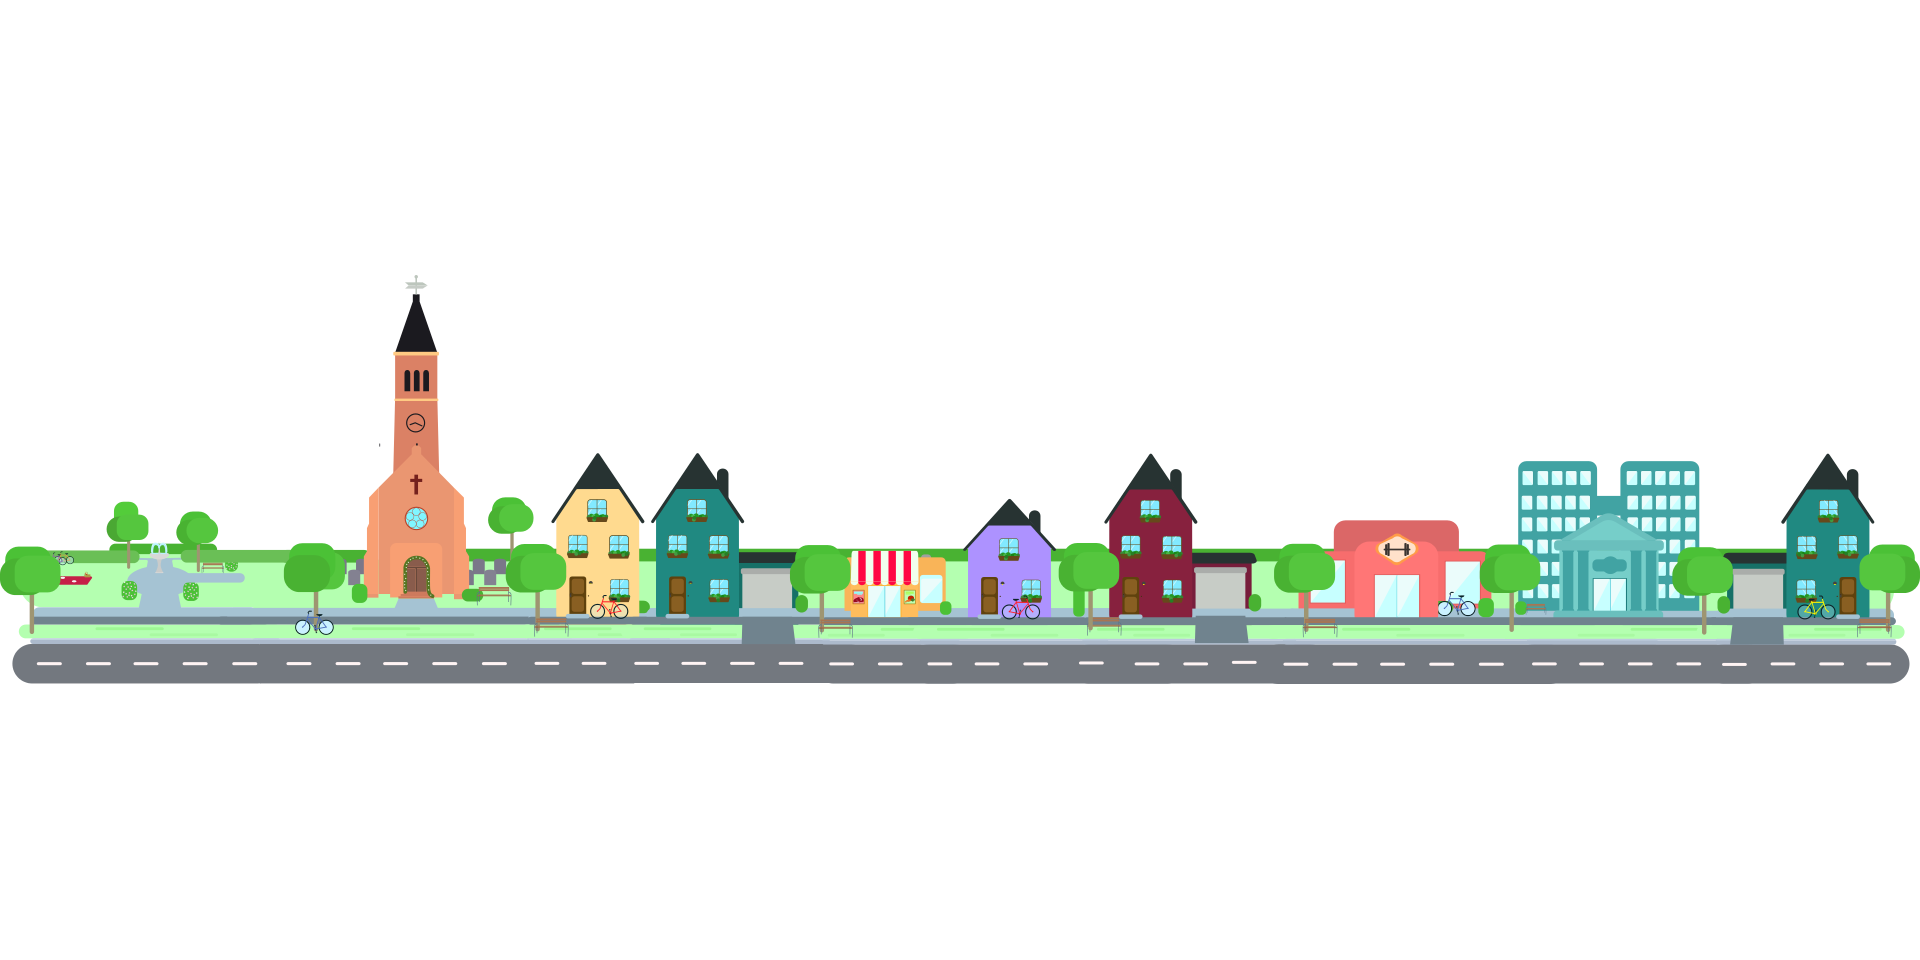 Community clipart city community. What is action pace